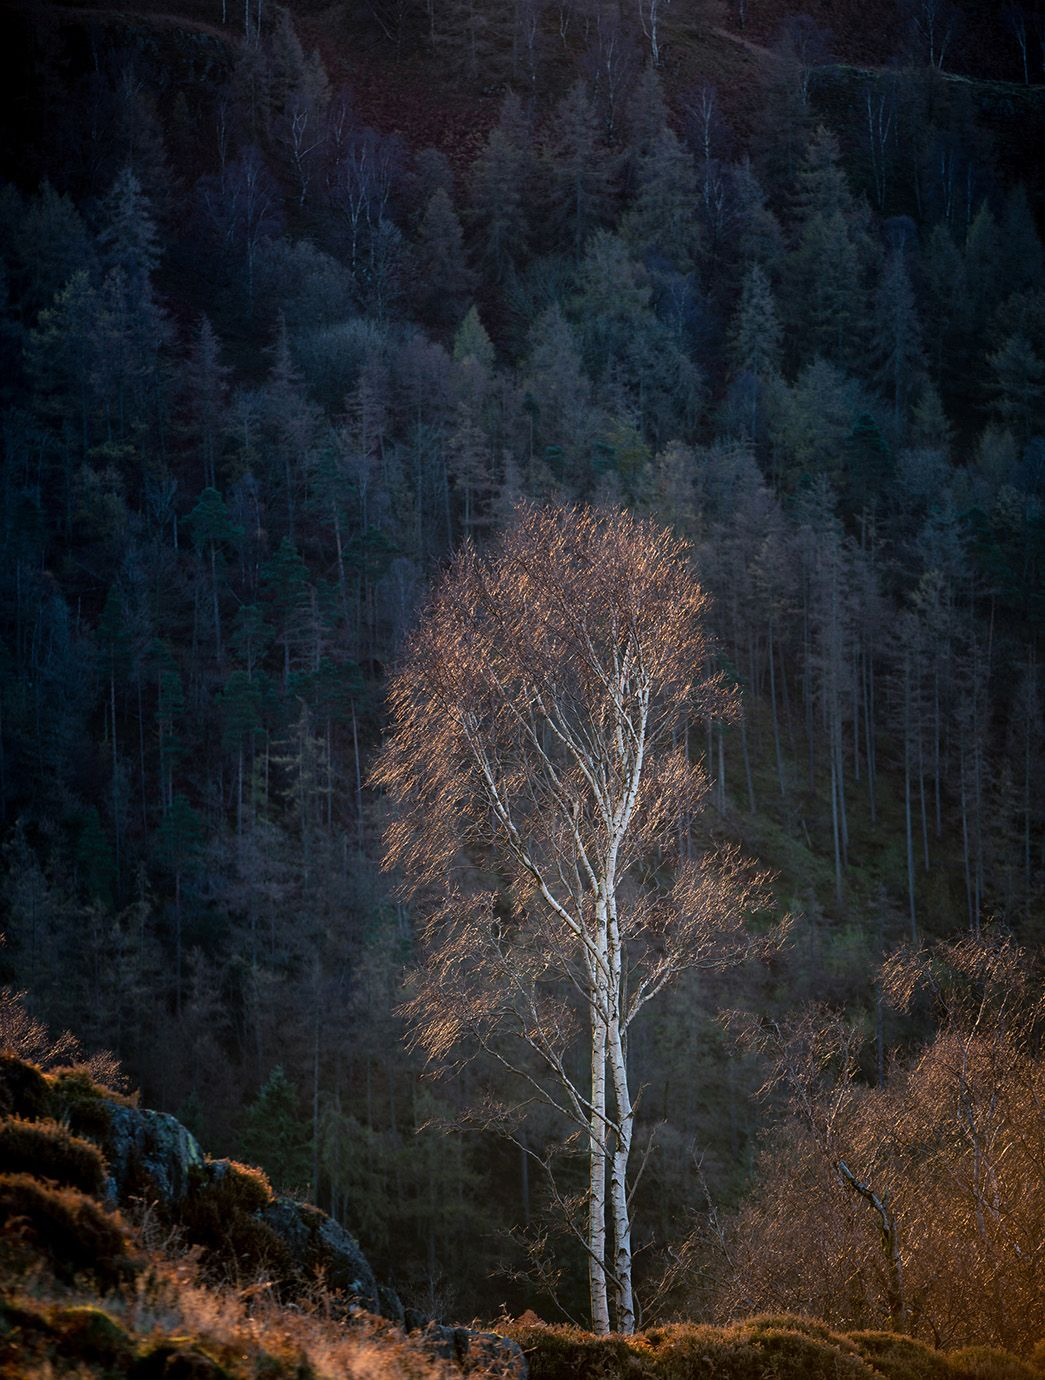 Winners Of The Landscape Photographer Of The Year Competition 2018 Unveiled Landscape Photography Tutorial Landscape Photography Landscape